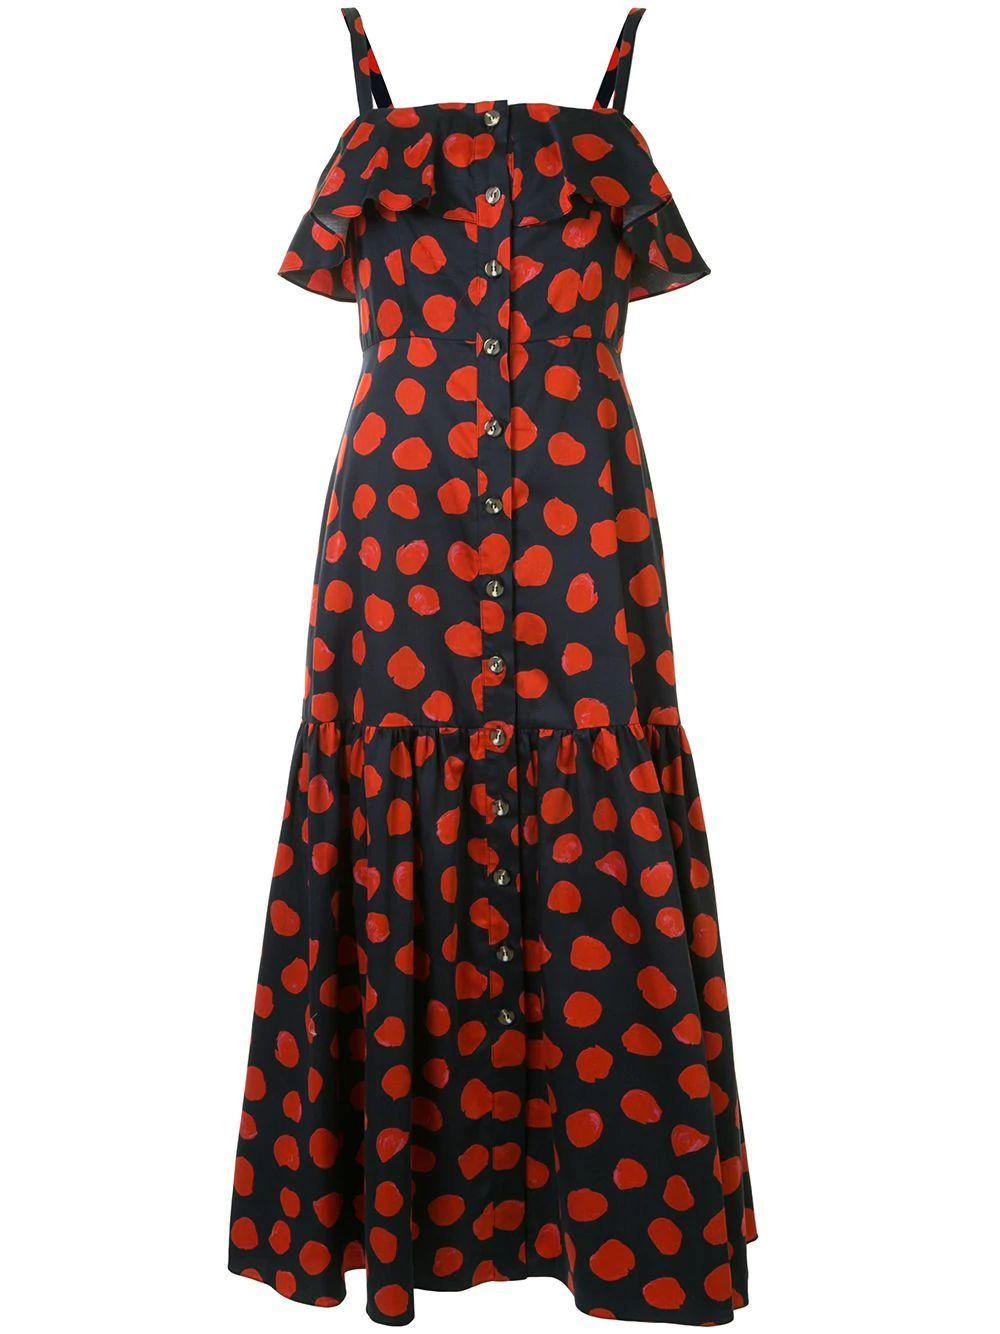 Square Neck Polka Dot Dress